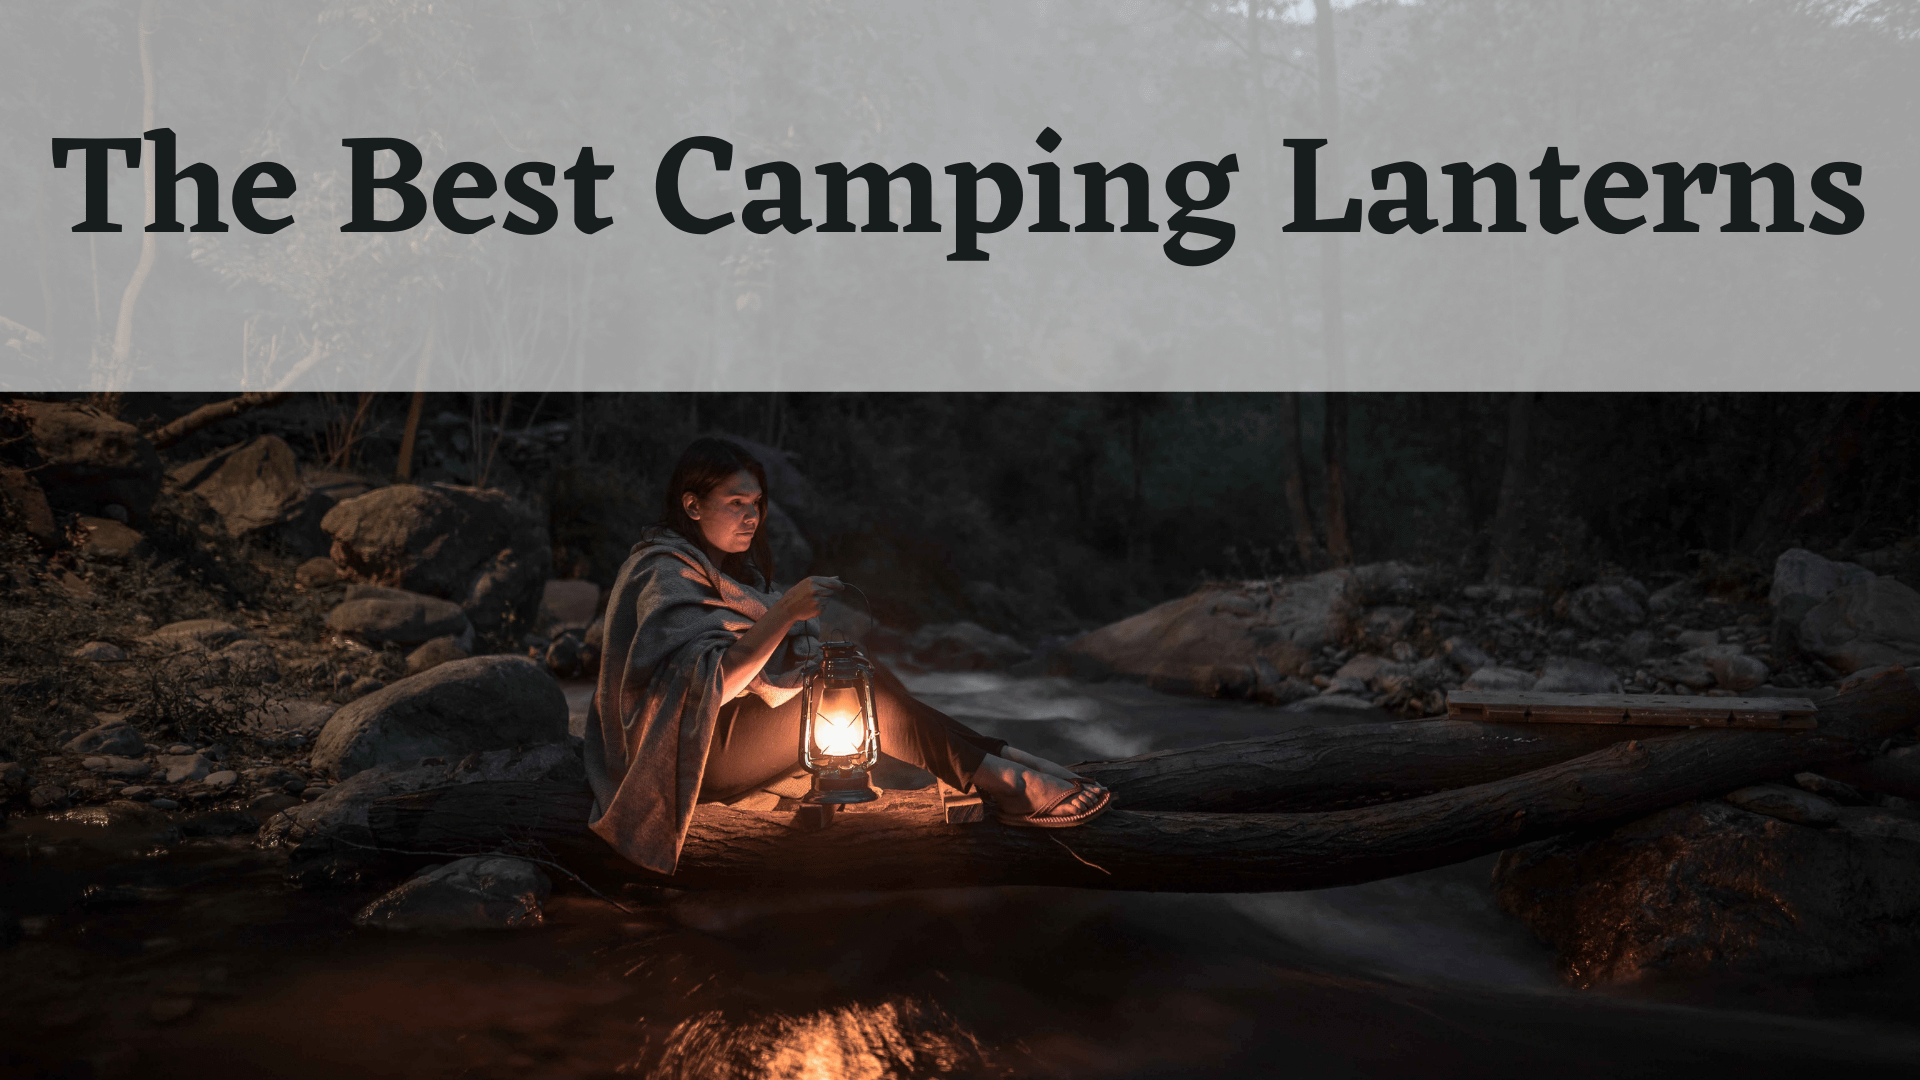 The Best Camping Lanterns